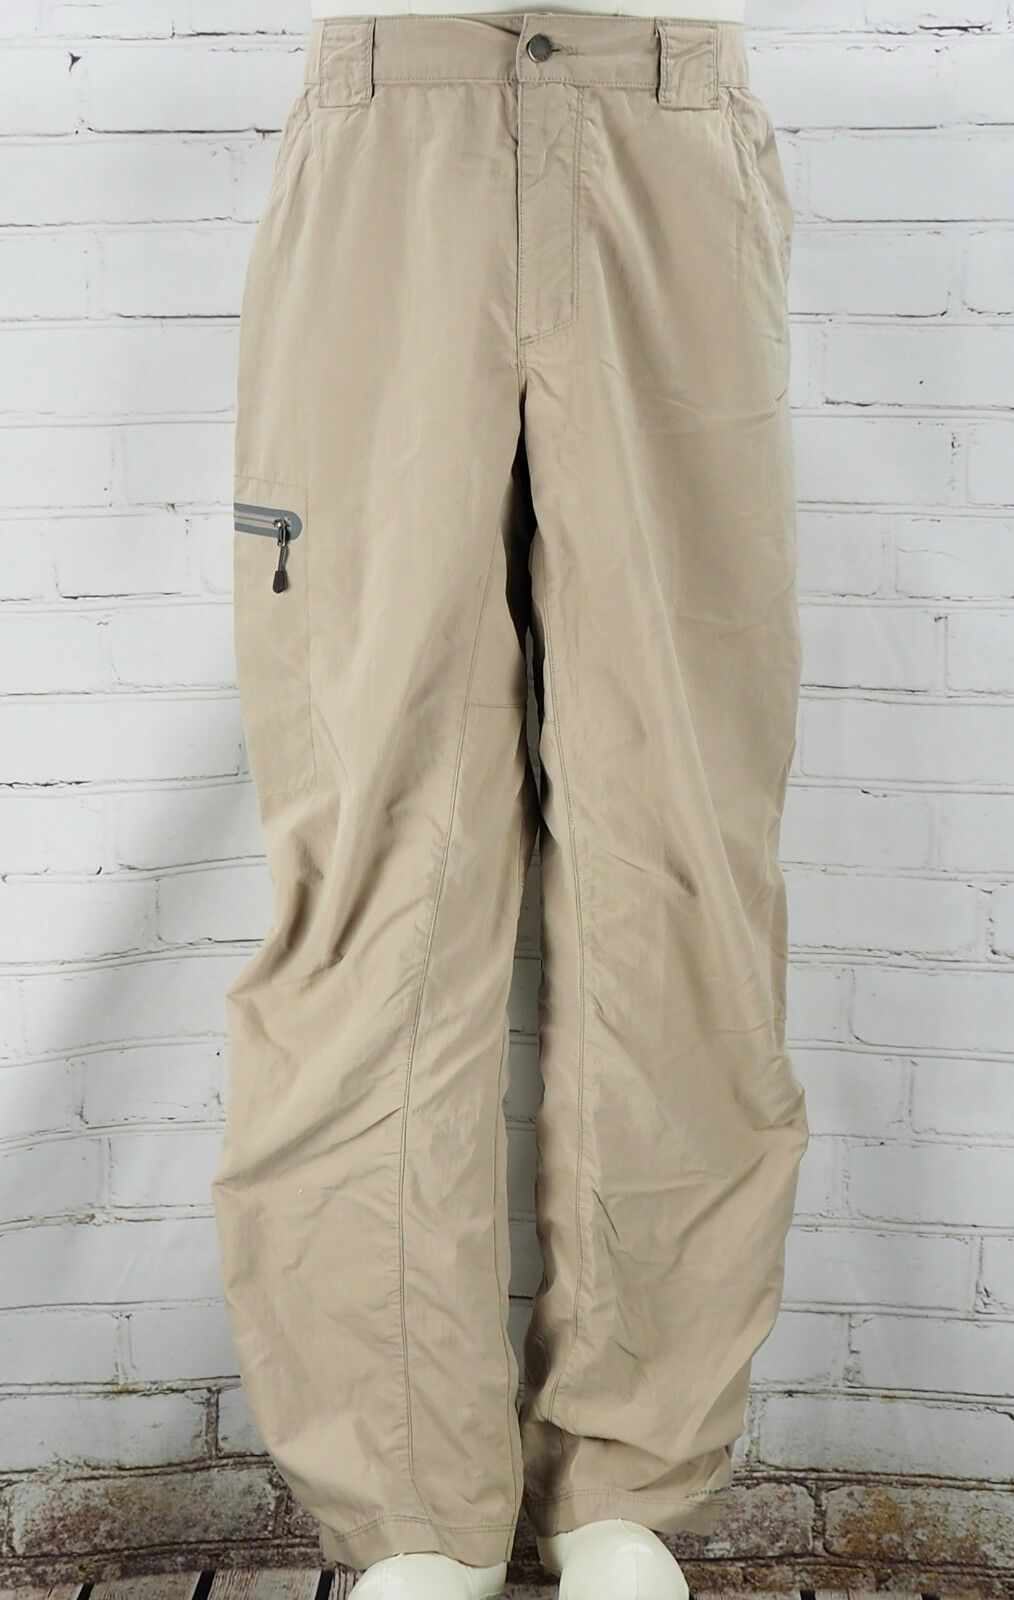 Columbia Titanium Cargo Work Pants Men's Size 34 100% Nylon Tan Khaki Outdoors